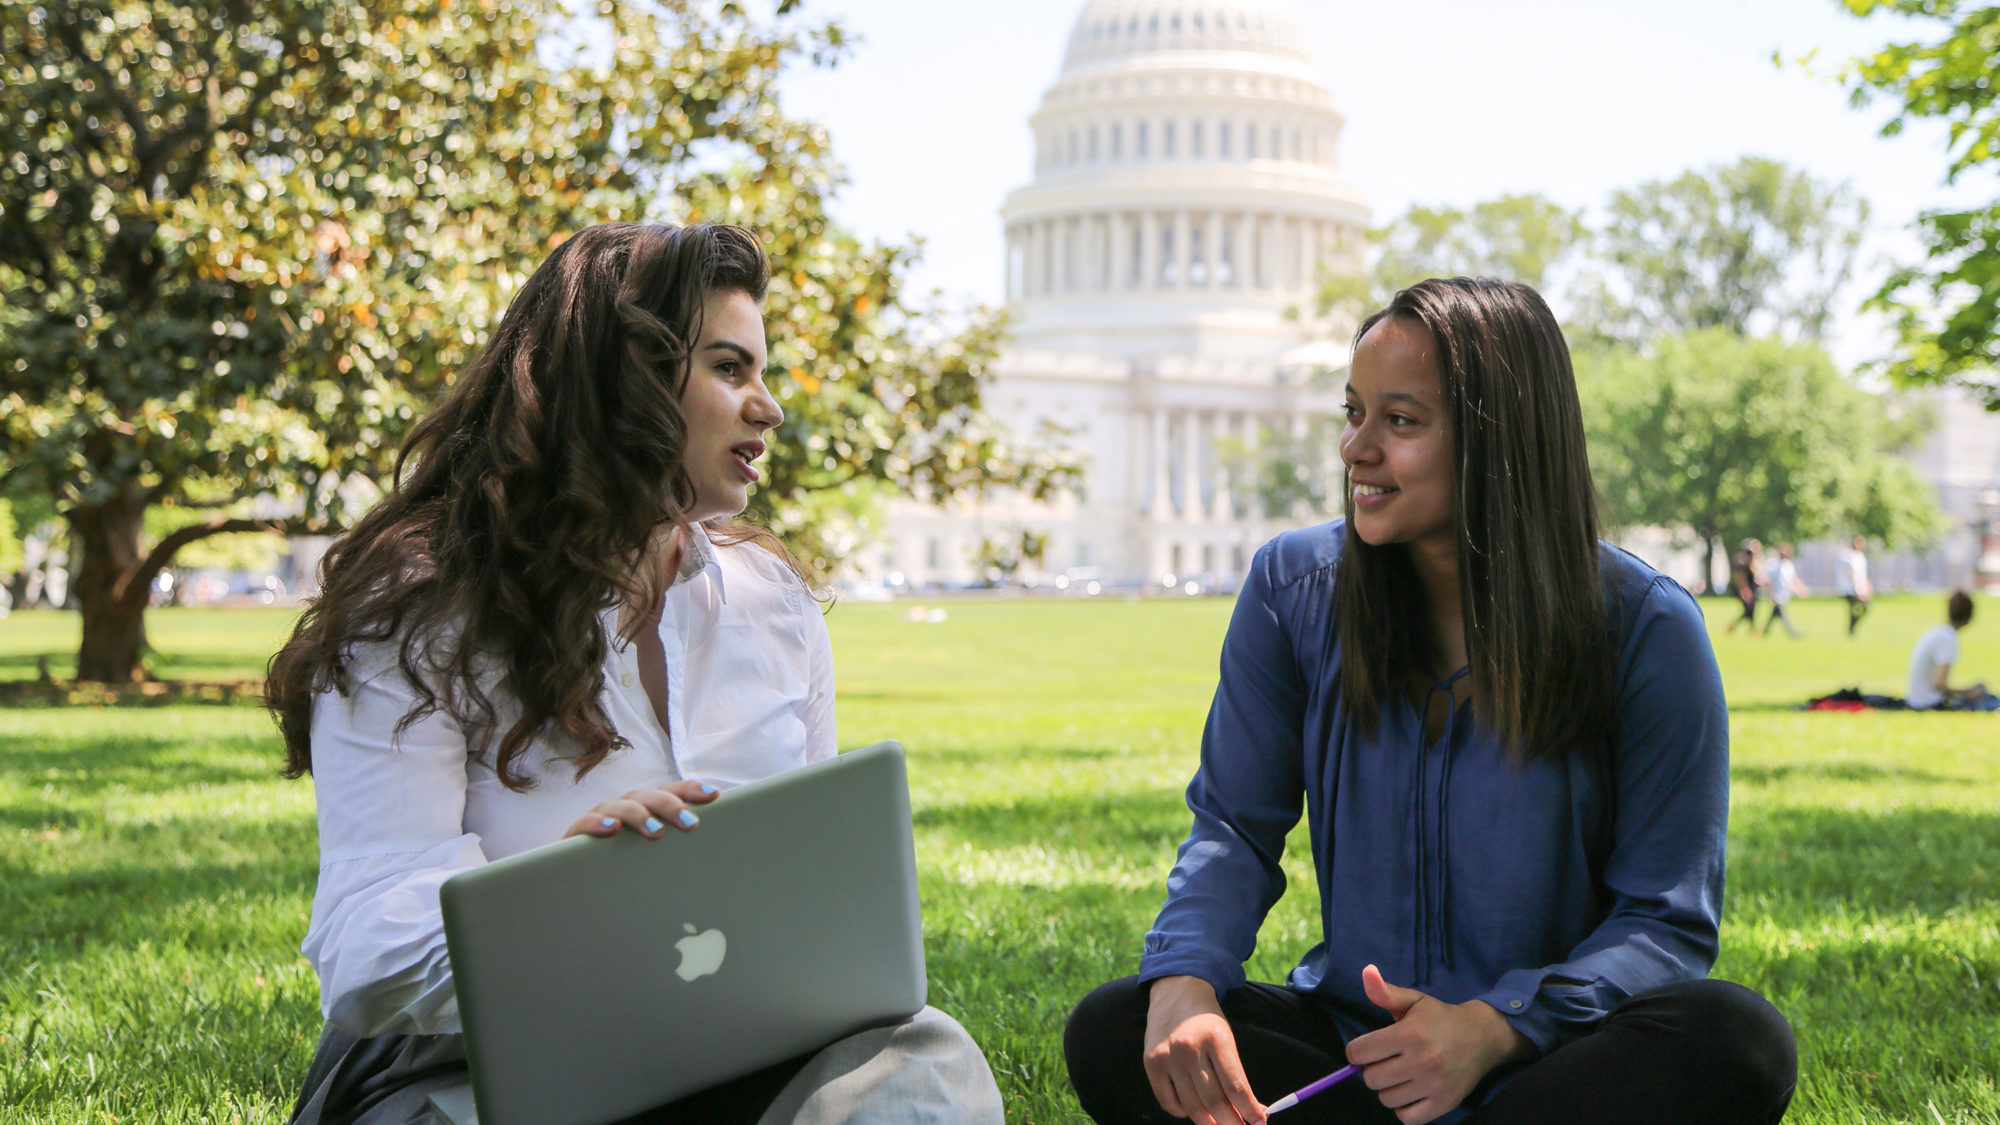 Two students work on laptops next to the Capitol Building.